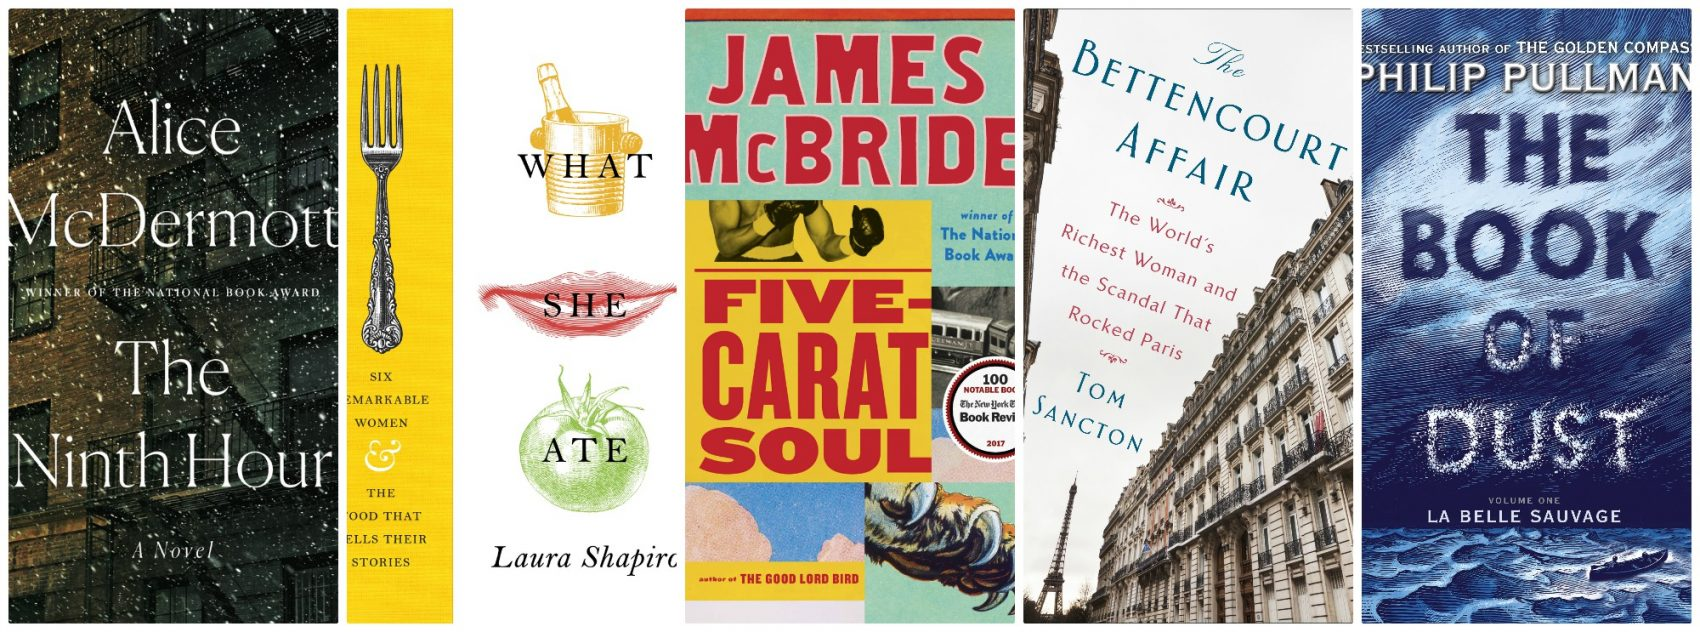 Five recommended titles from NPR Books editor Petra Mayer, to consider adding to your shopping list this holiday season. (Courtesy of the publishers)